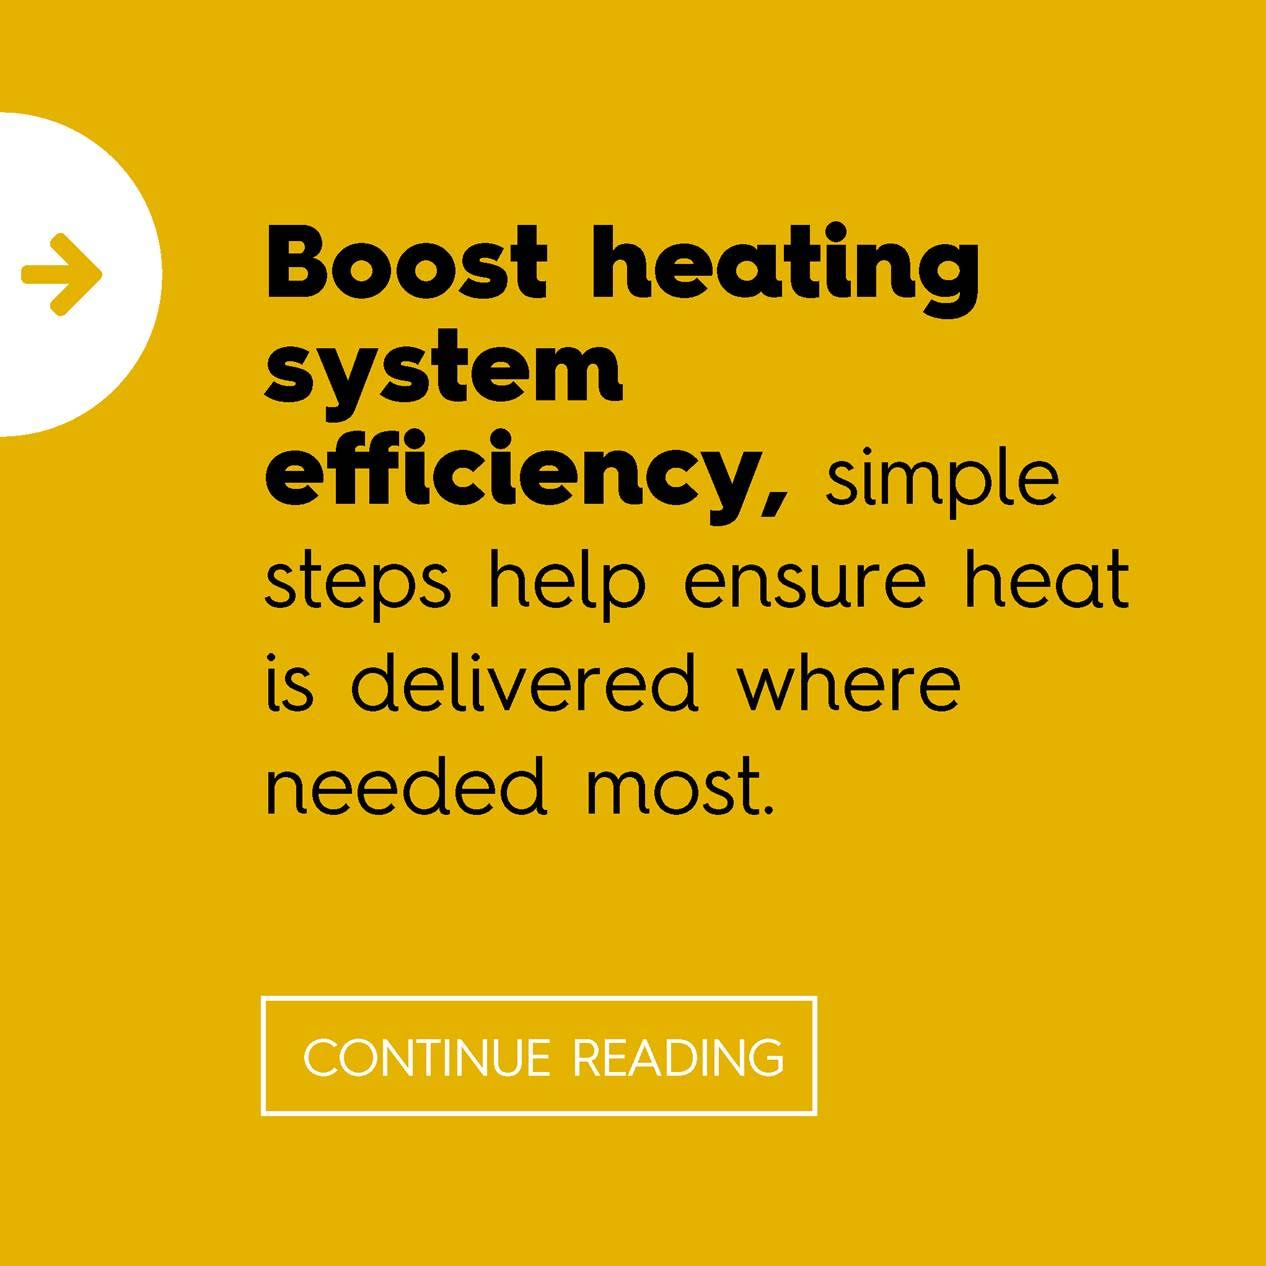 Boost heating system efficiency